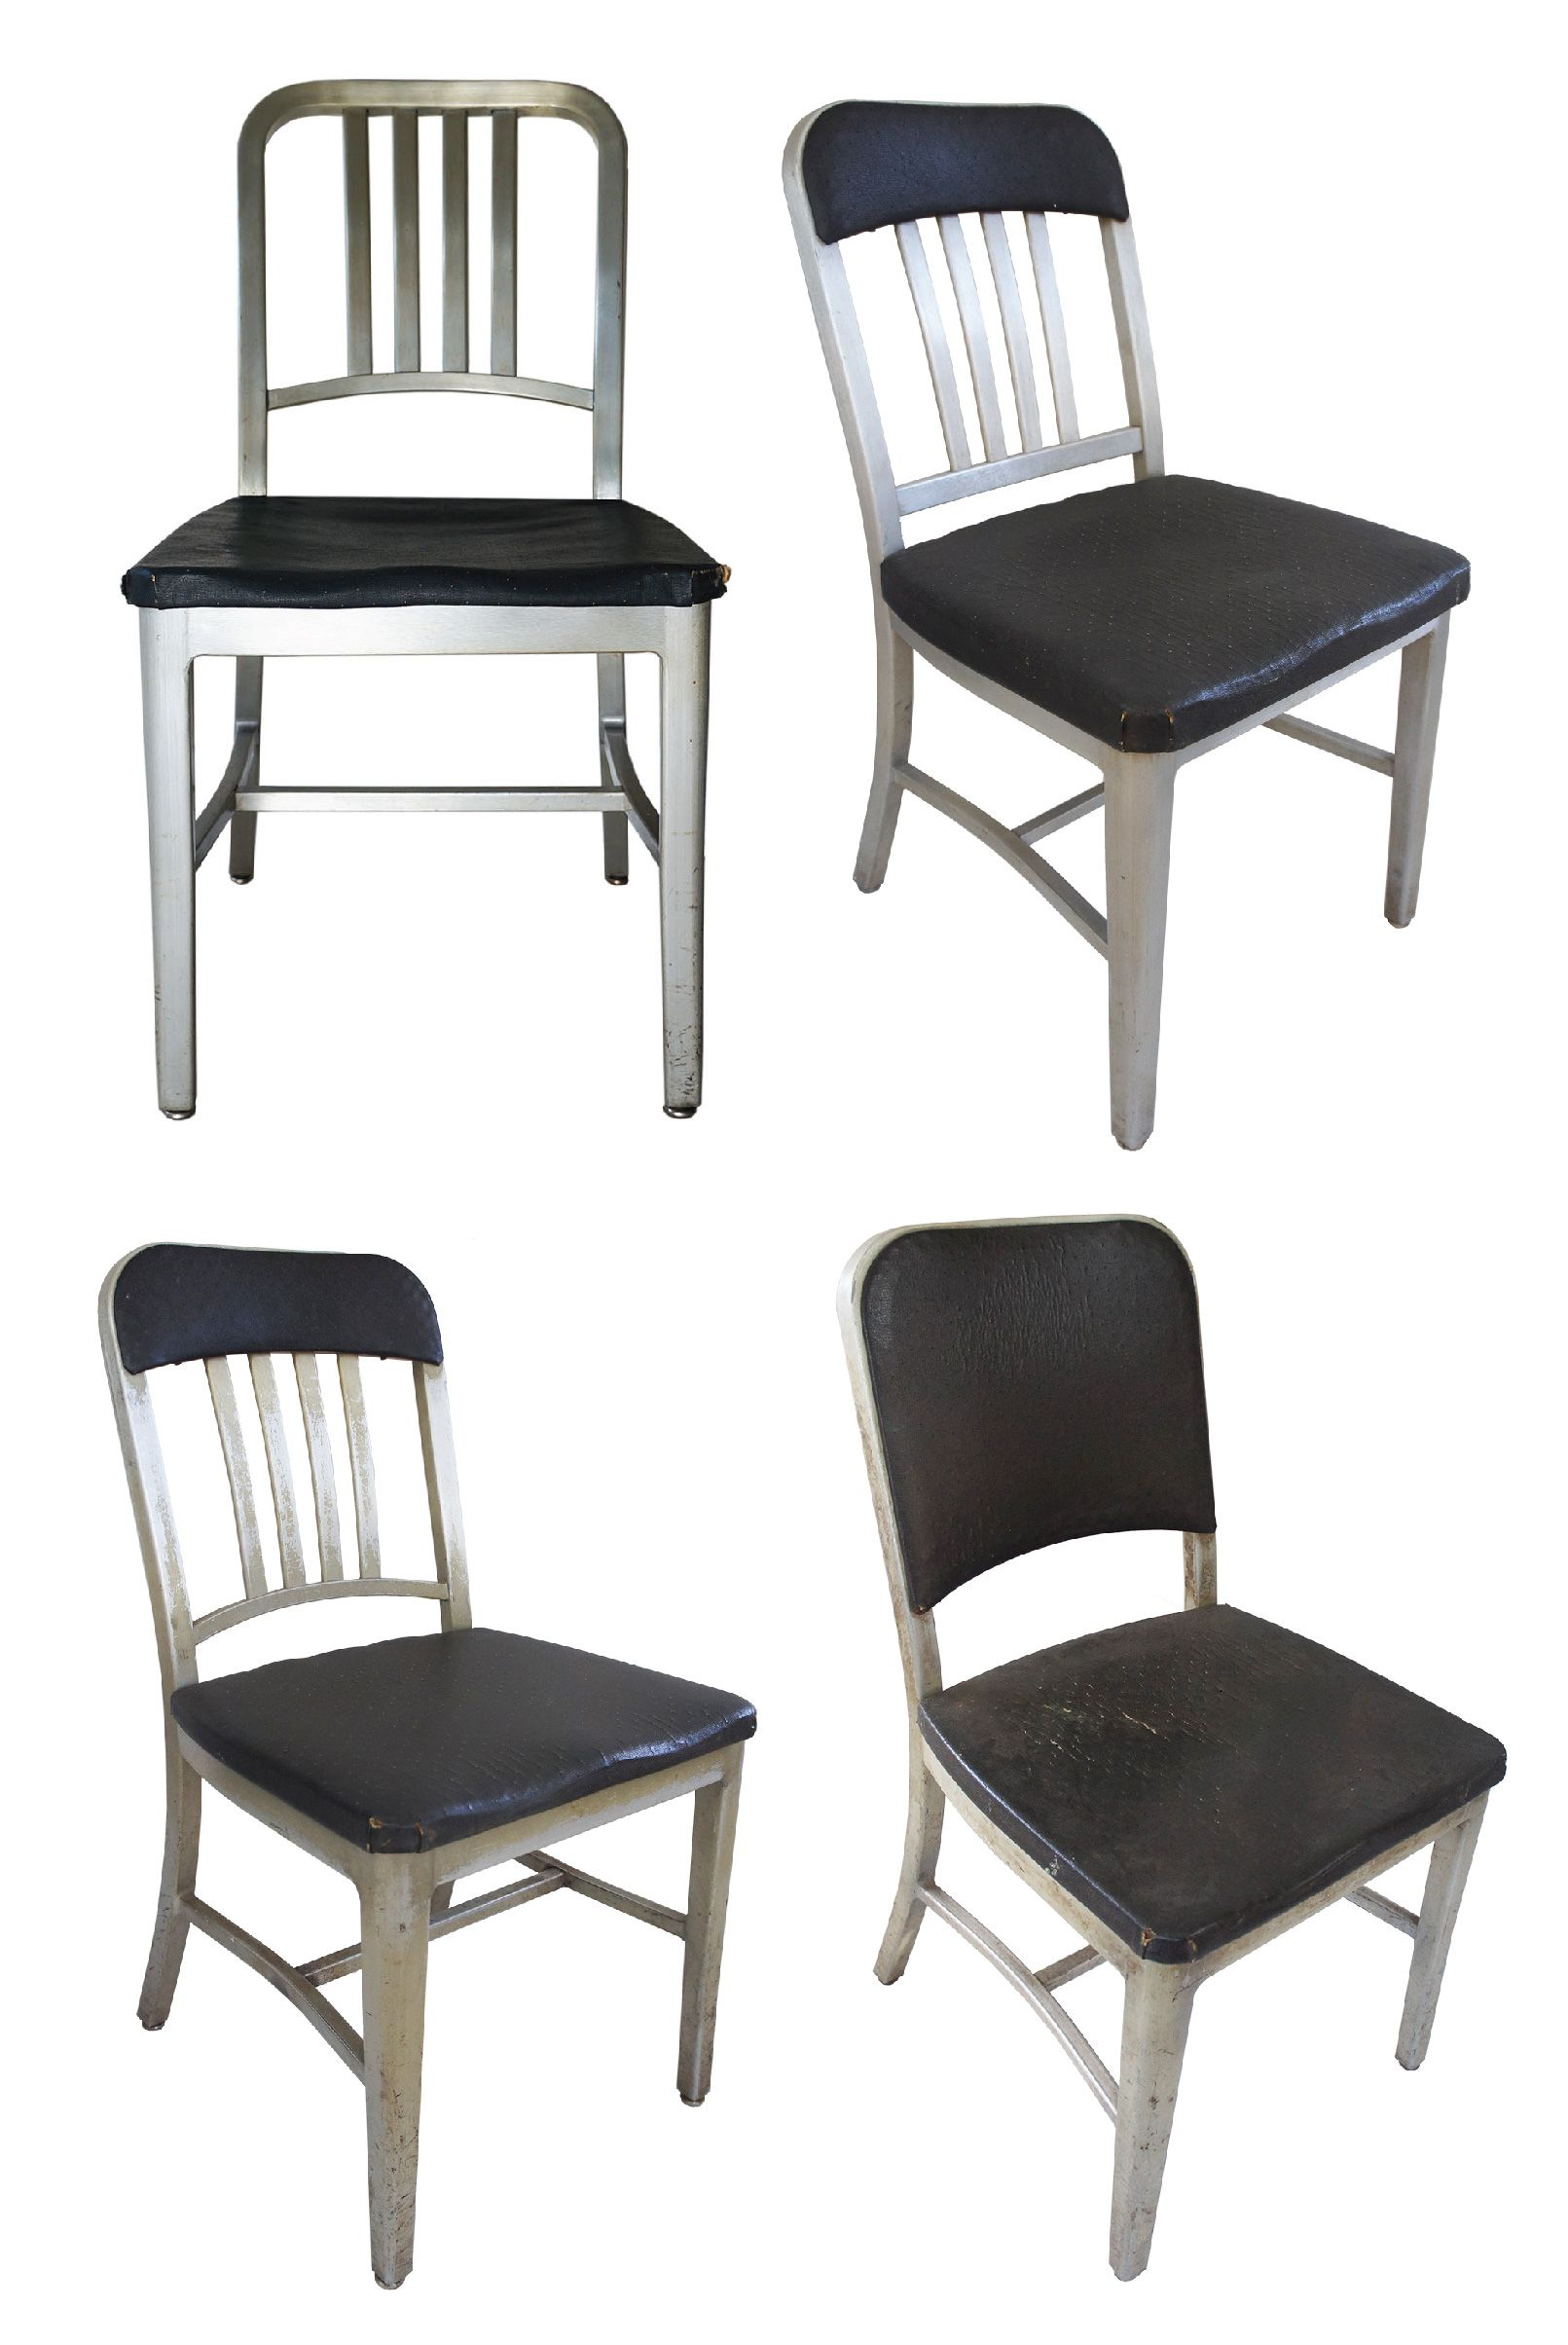 Emeco Aluminum Navy Chairs, Assorted   Set Of 4   Image 2 Of 5